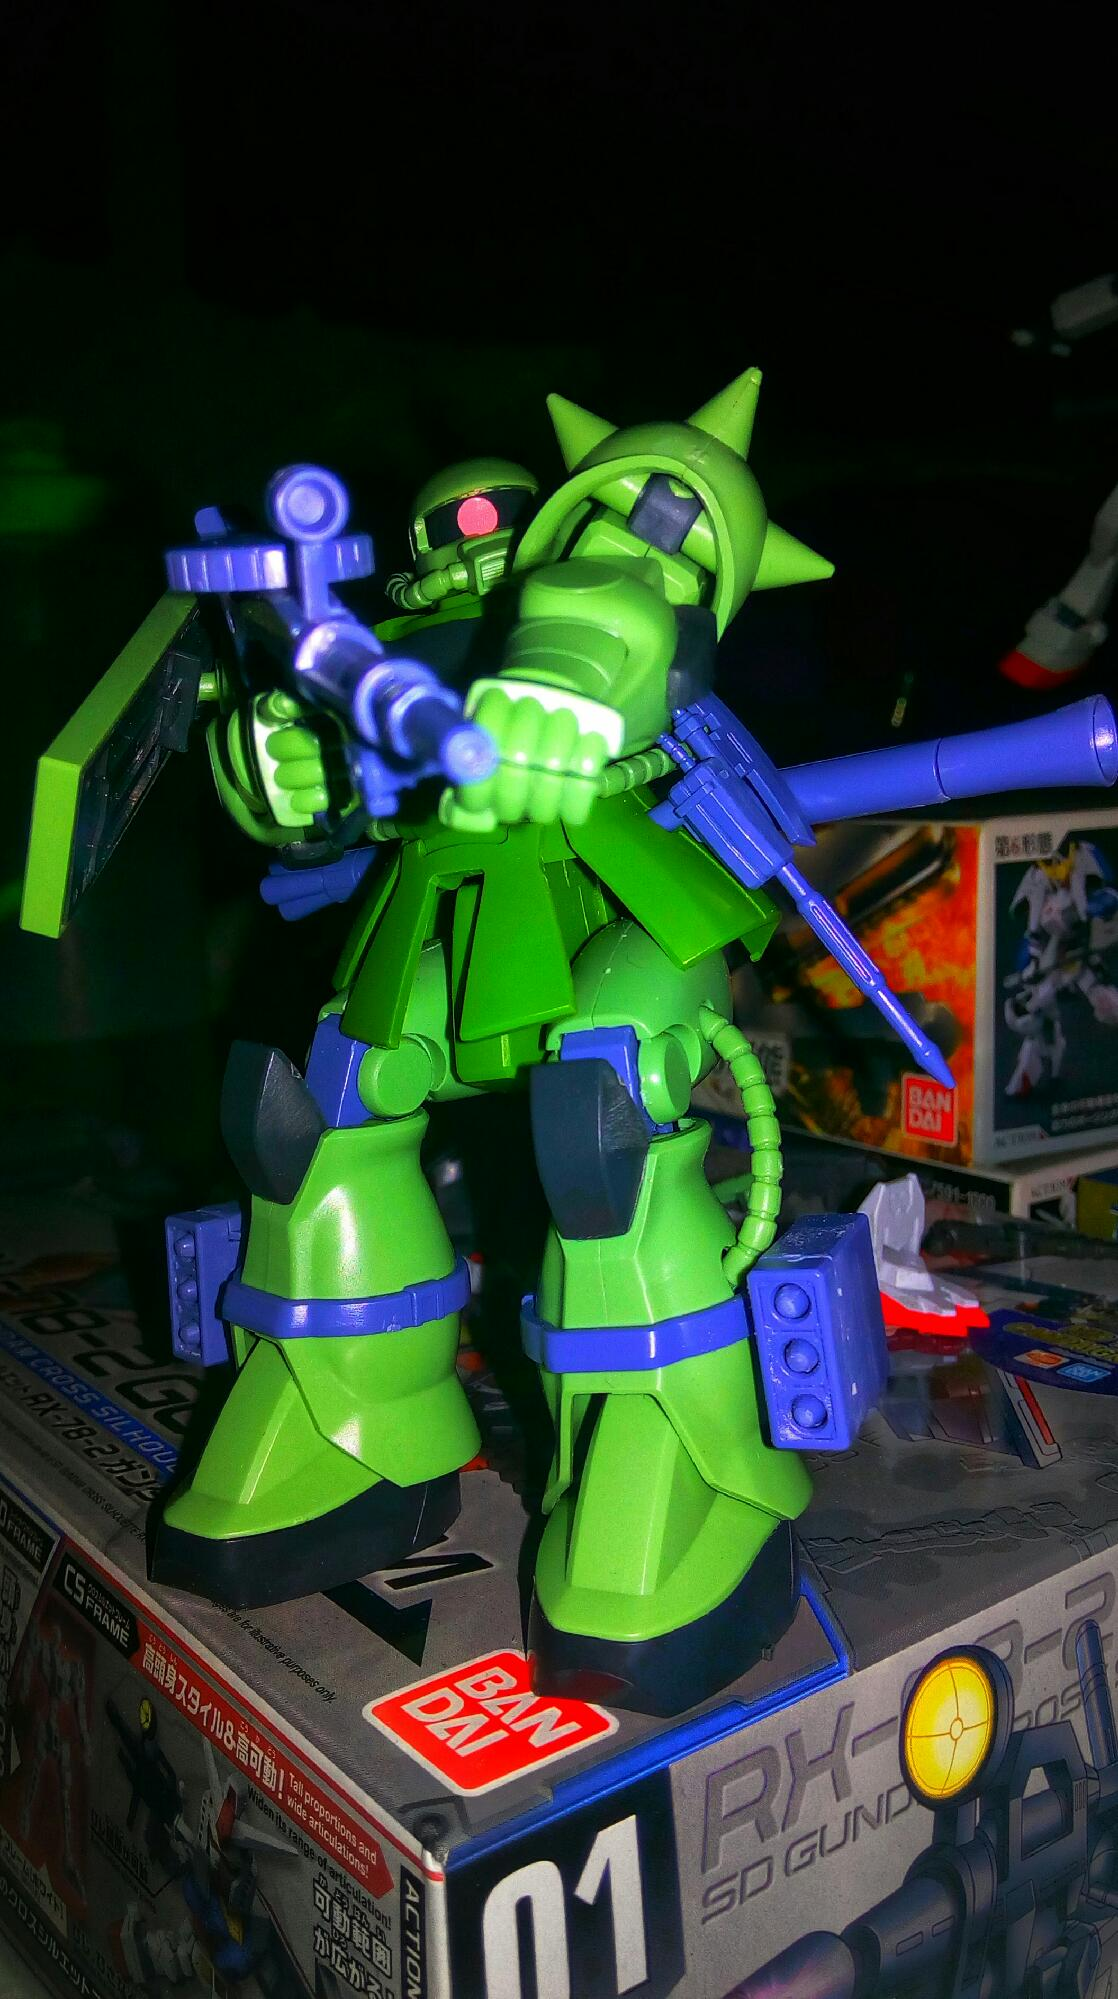 Just finishing my Zaku MS-06 ll